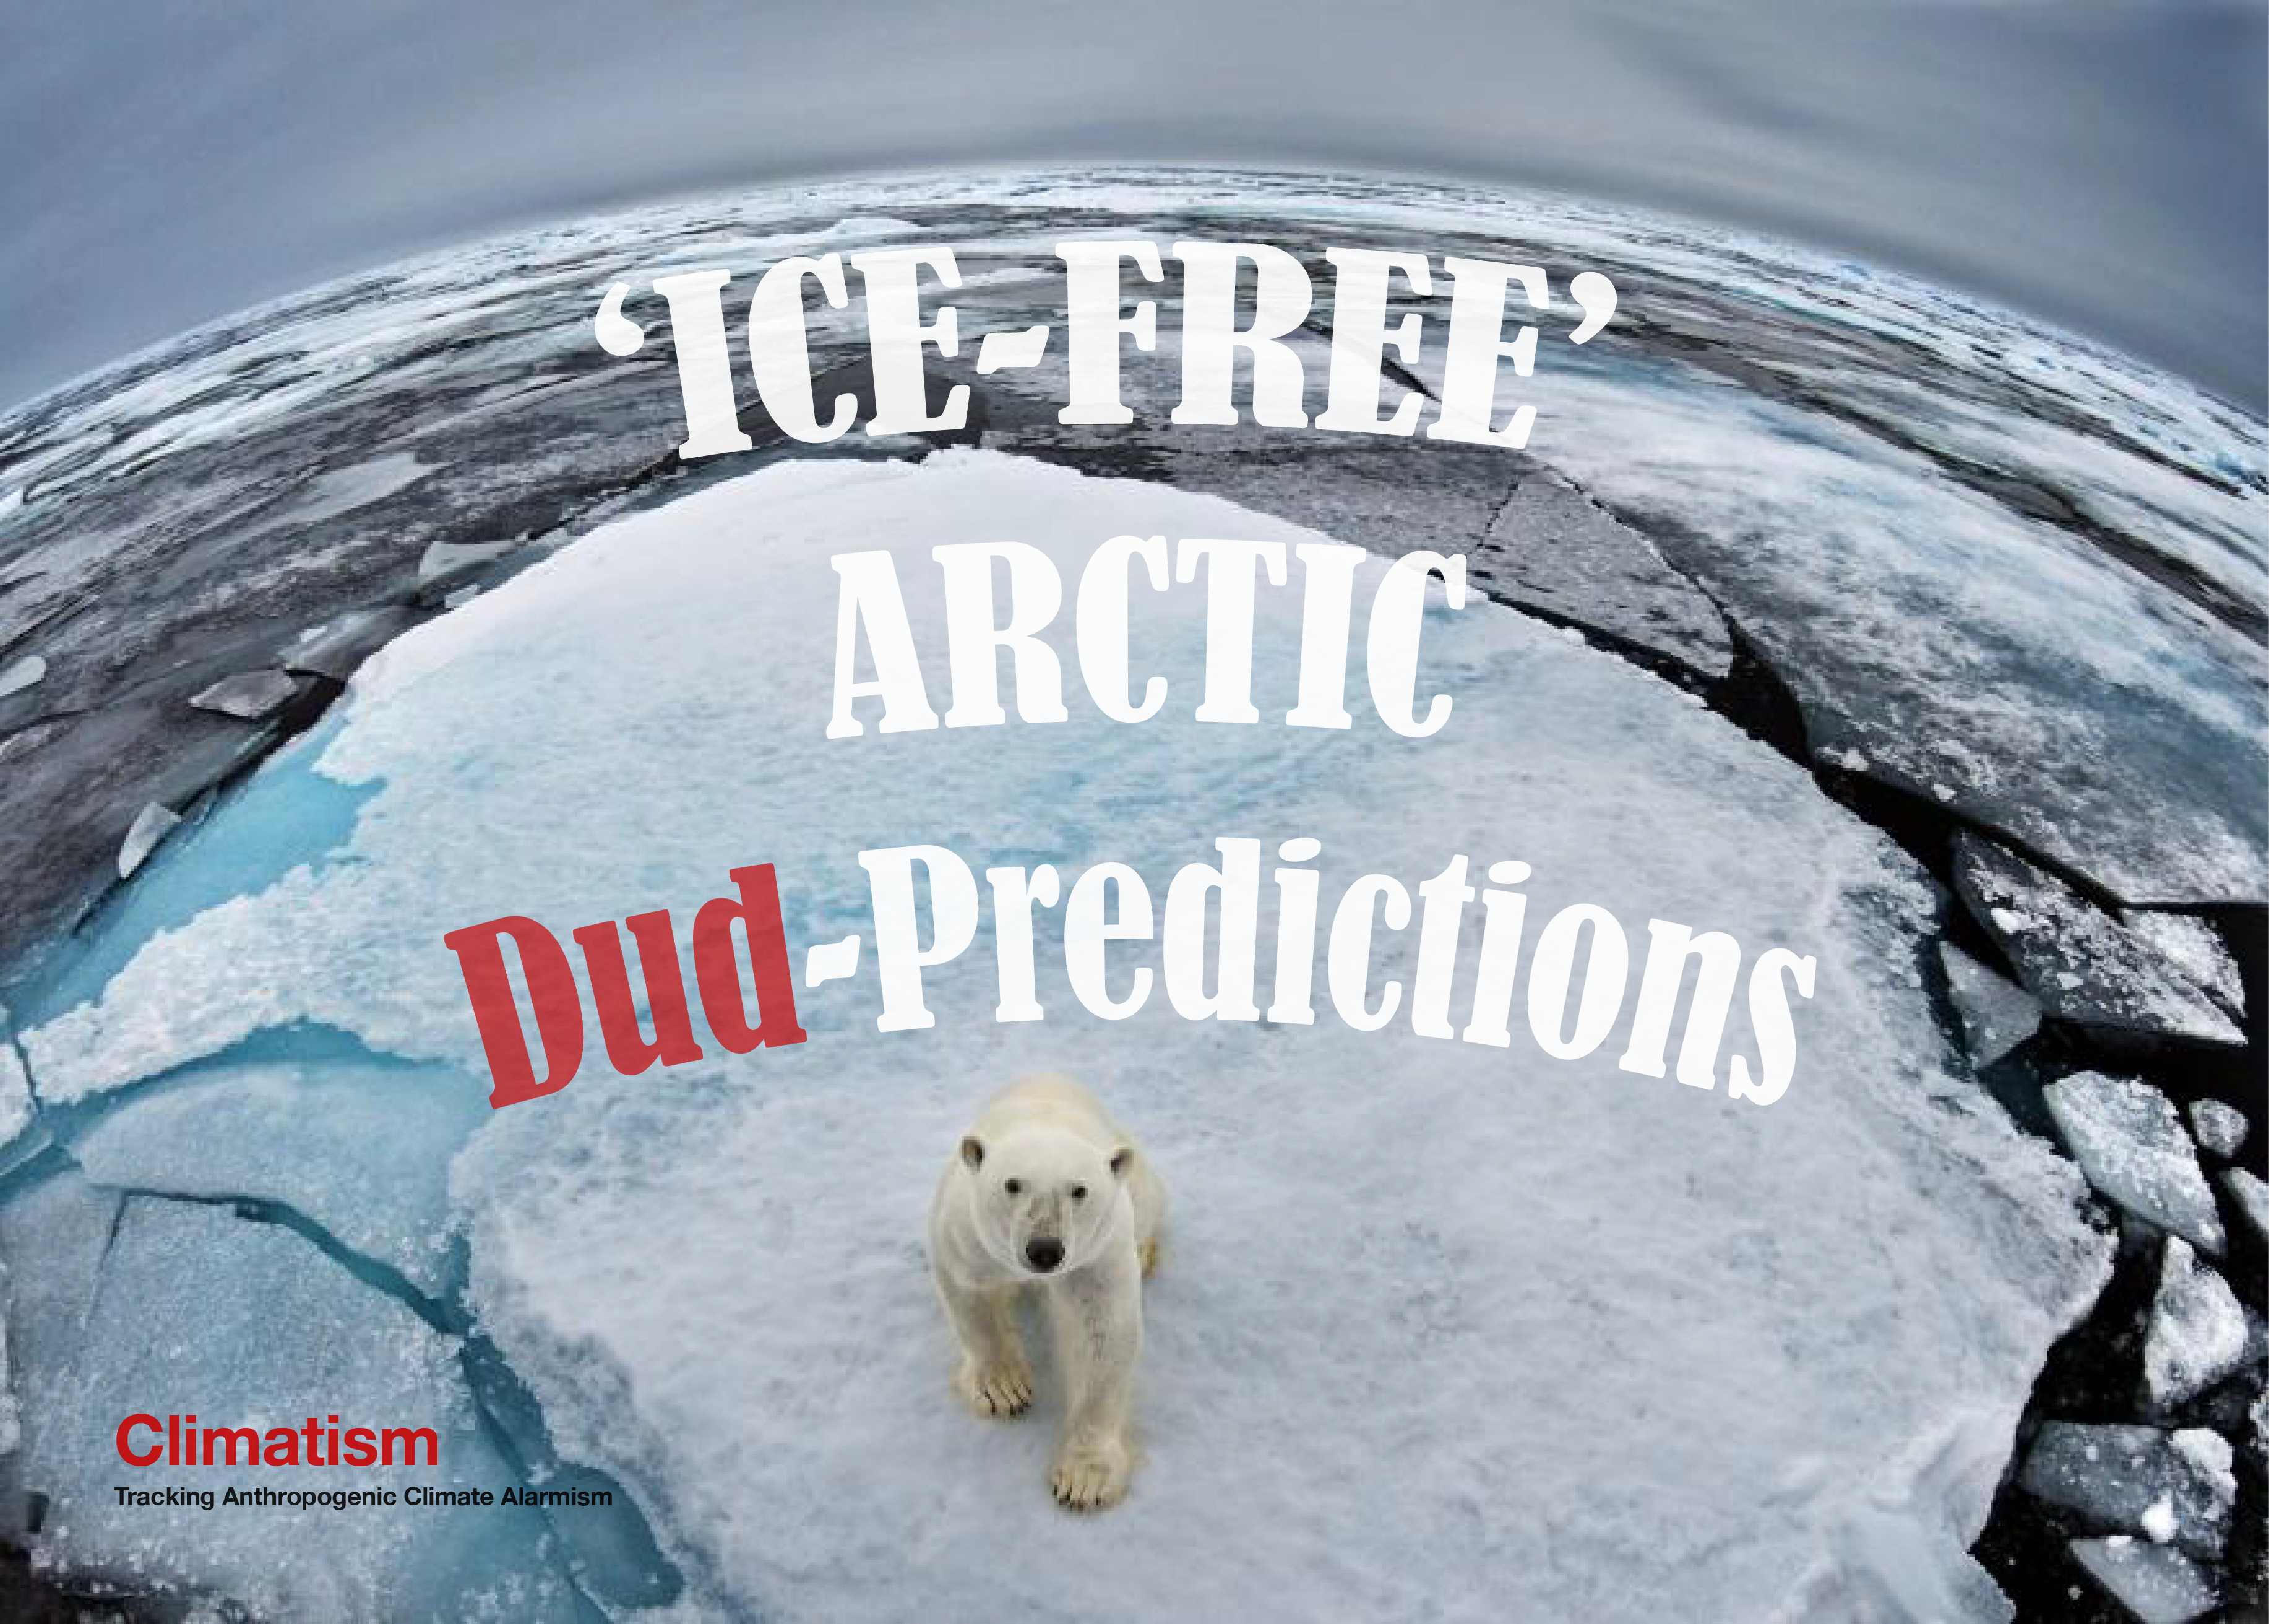 ice-free arctic dud-predictions - climatism